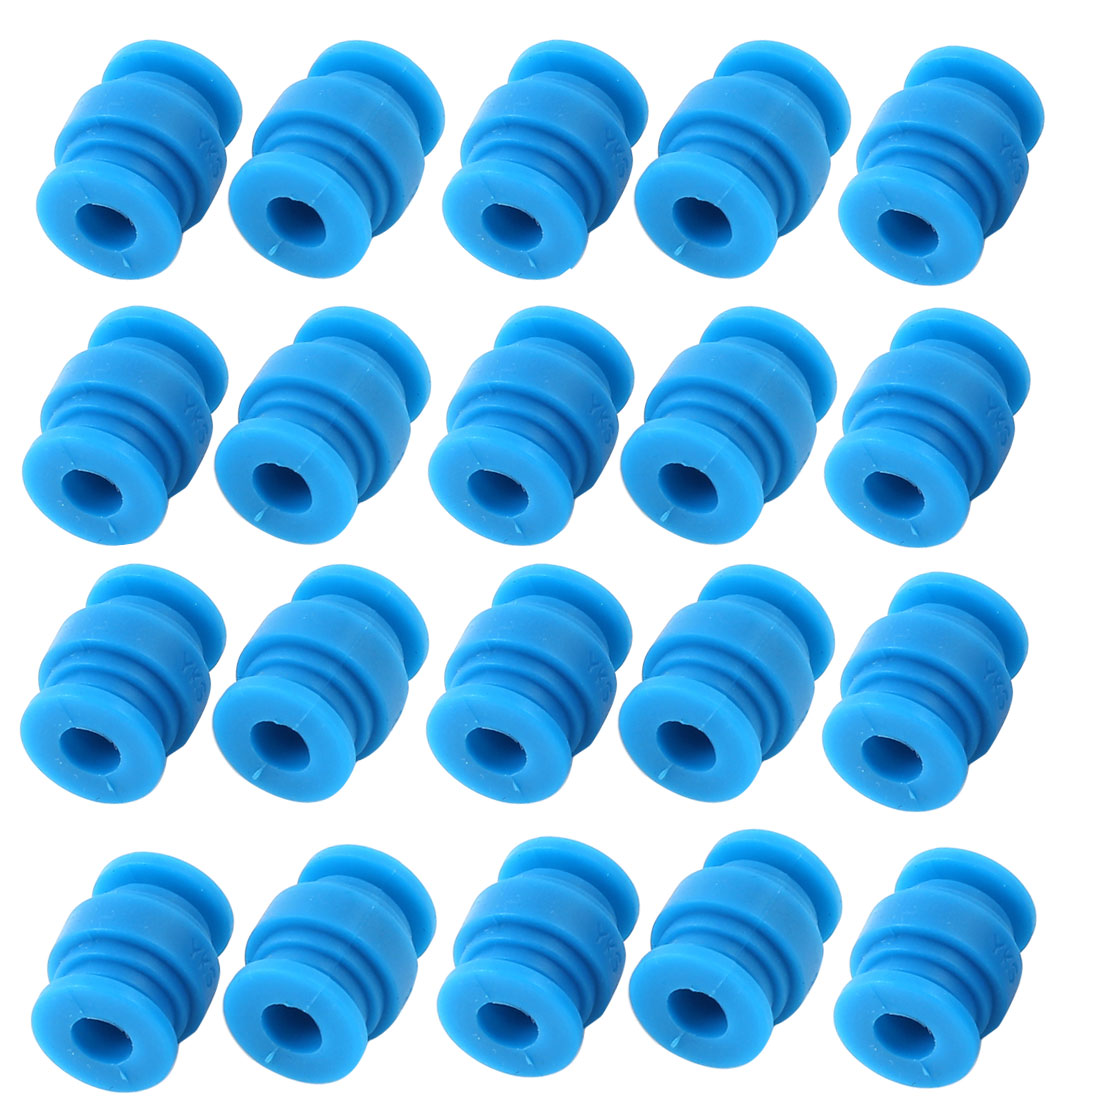 Radio-controlled Aircraft Blue Rubber Shock Absorption Damping Ball 20 Pcs